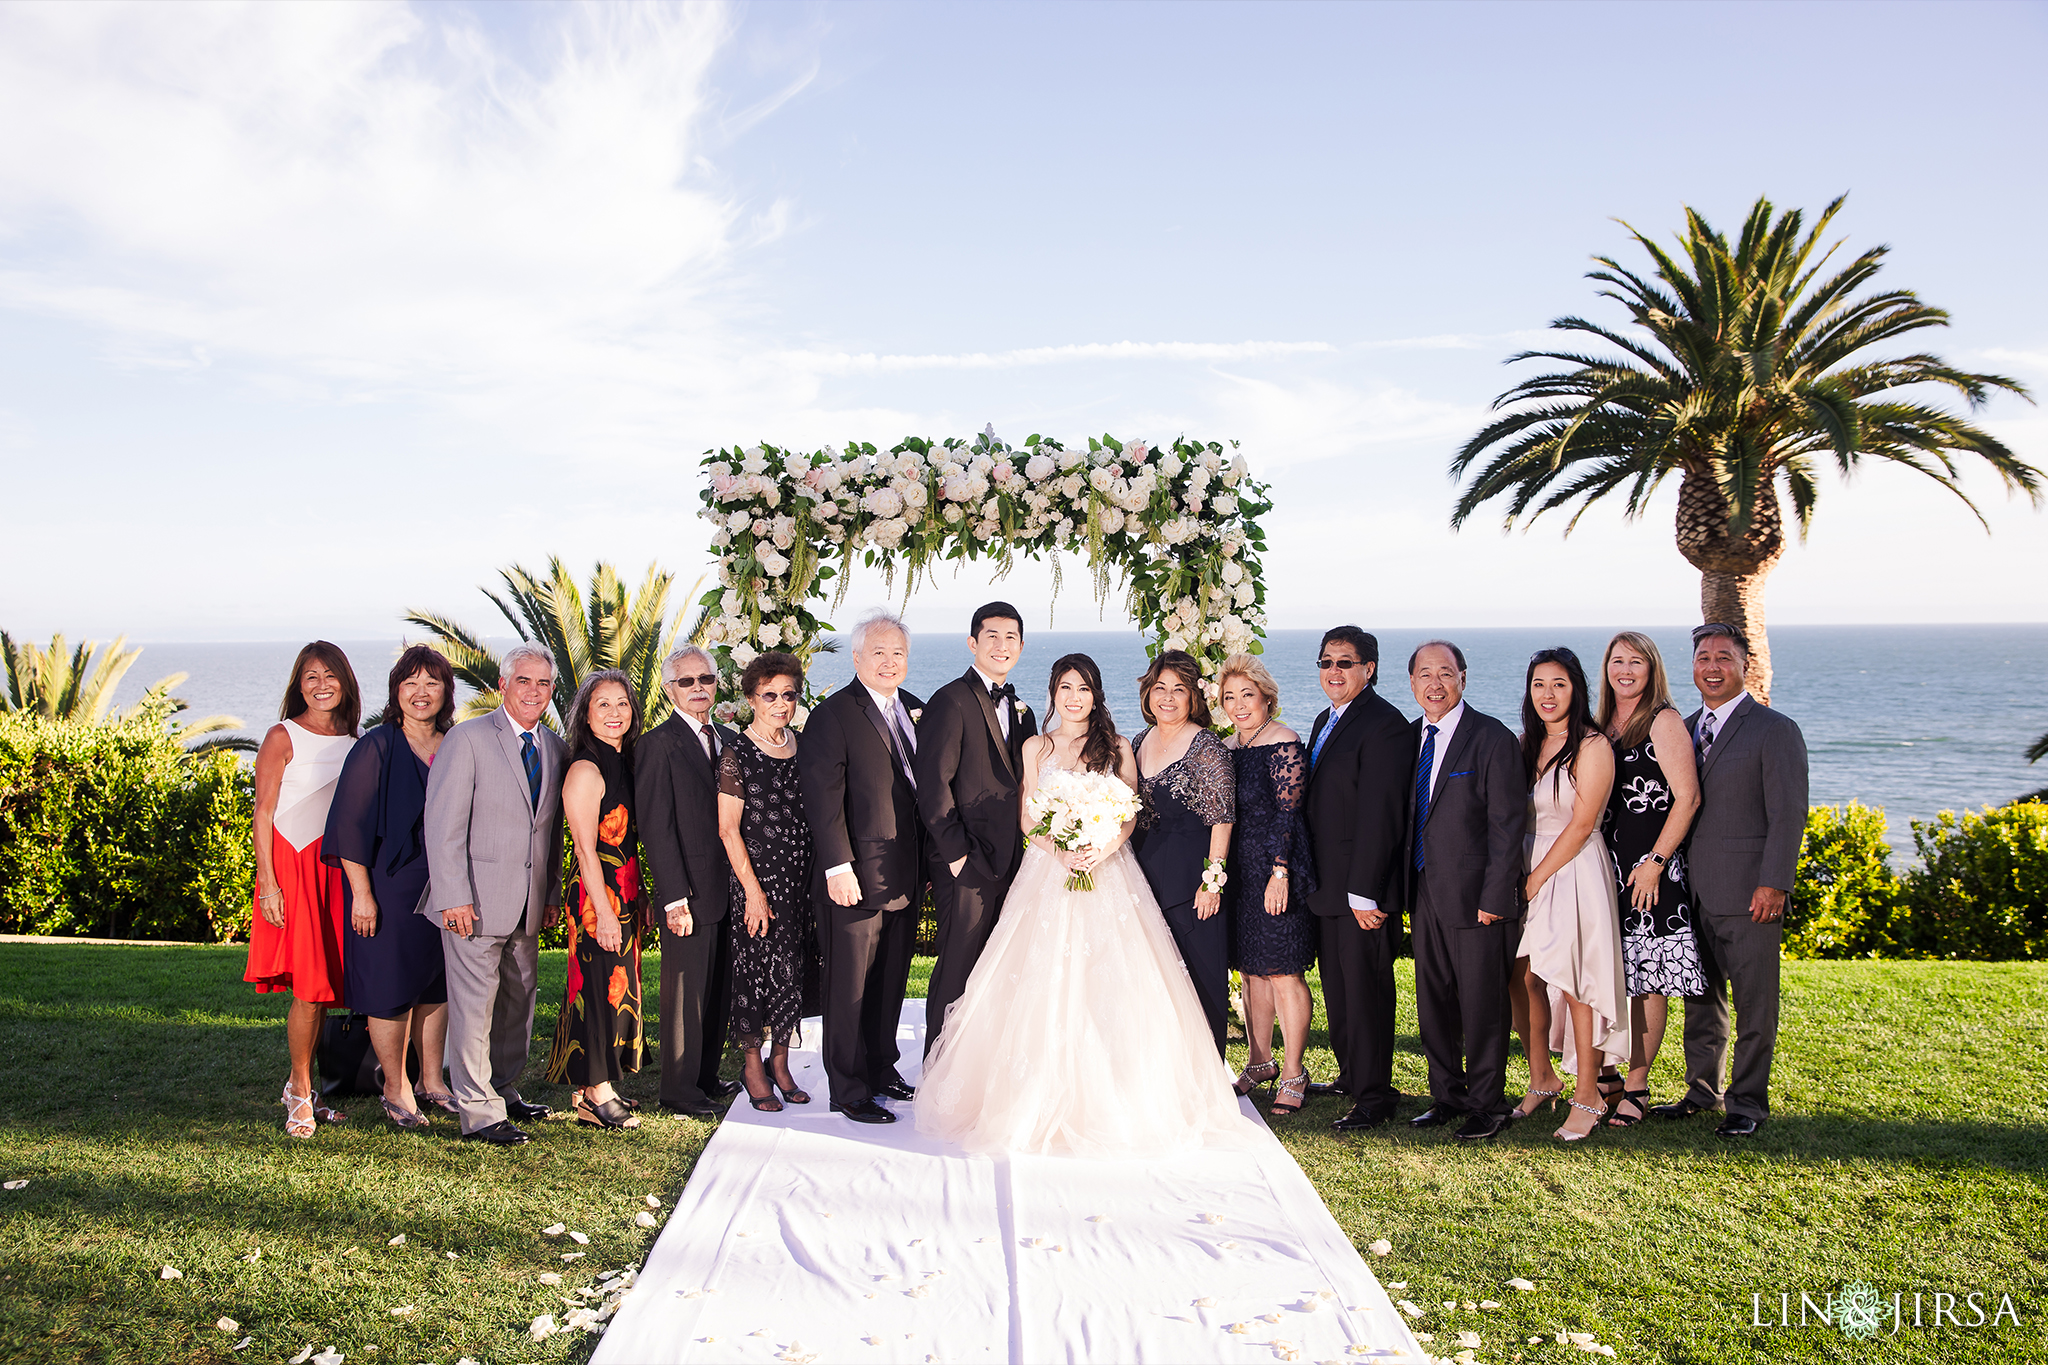 Family Photo Bel Air Bay Club Los Angeles Wedding Photography